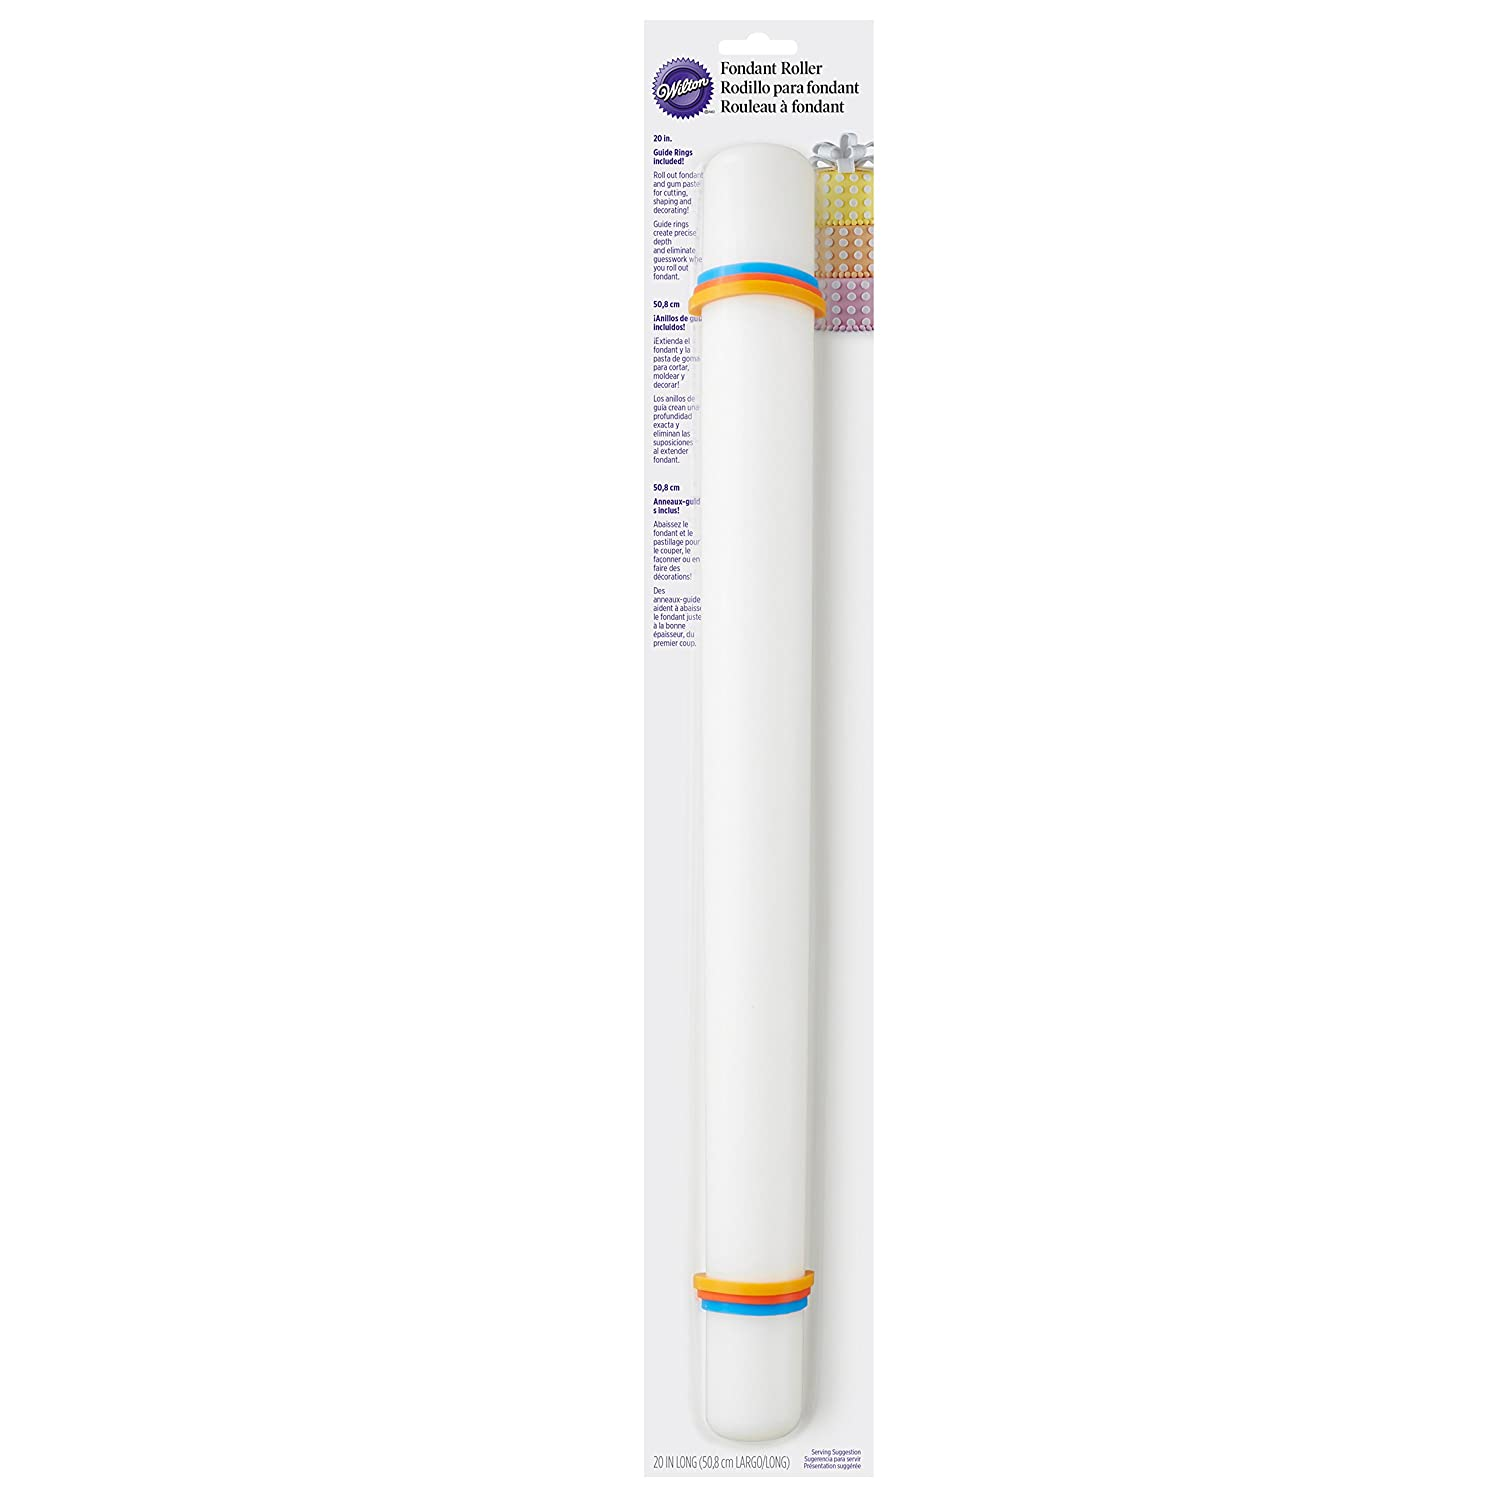 50.8 cm Large 20 in Plastic Wilton Fondant Roller Rolling Pin with Guide Rings